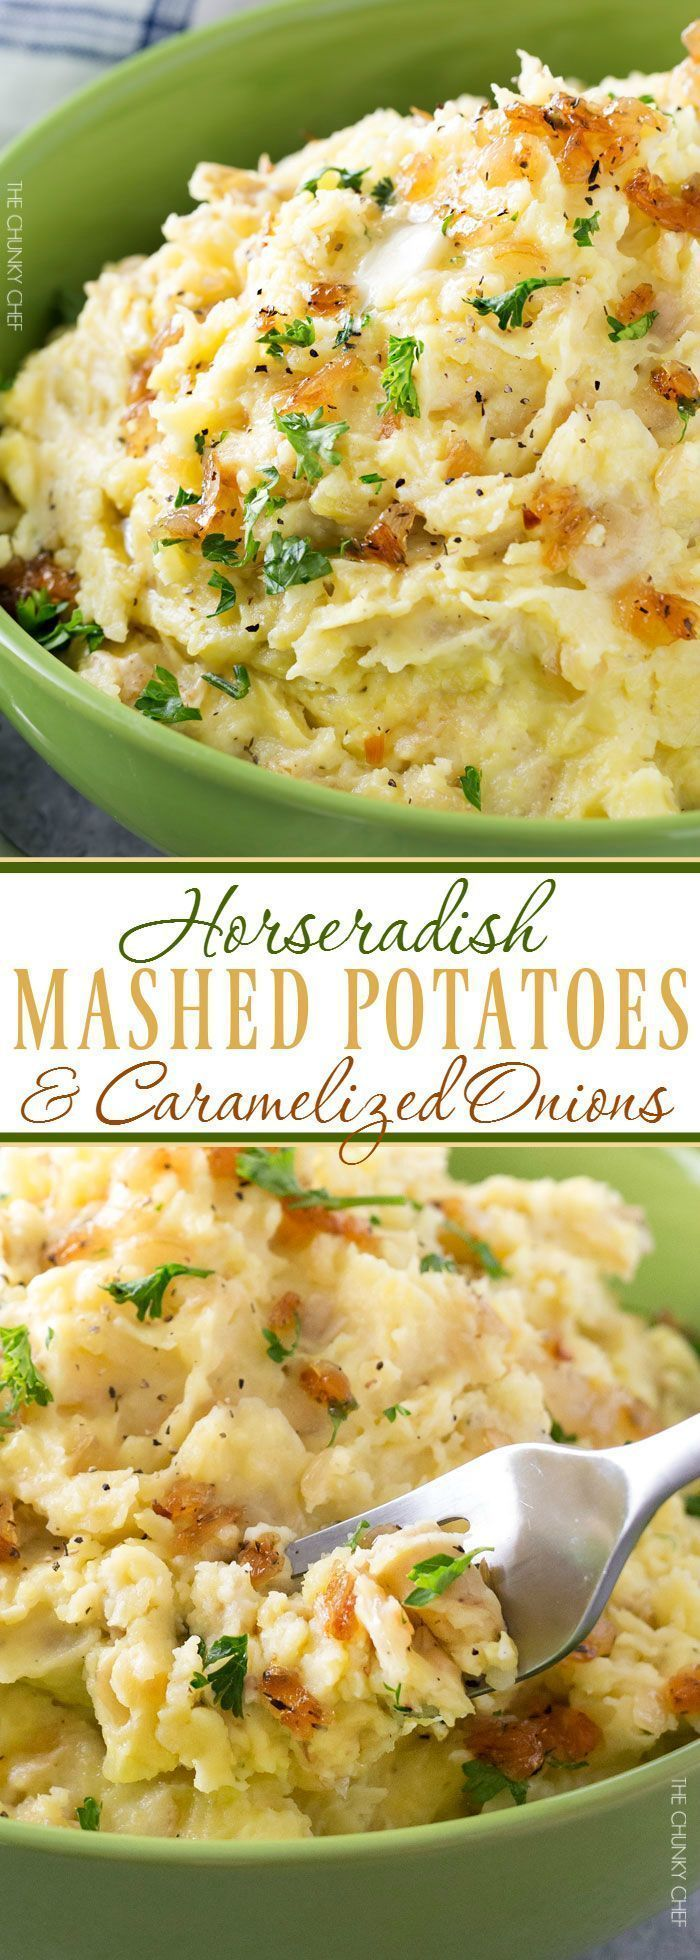 Horseradish Mashed Potatoes with Caramelized Onions | Not your average side dish, these mashed potatoes are full of amazing flavor combinations. Perfect for your holiday table! | thechunkychef.com